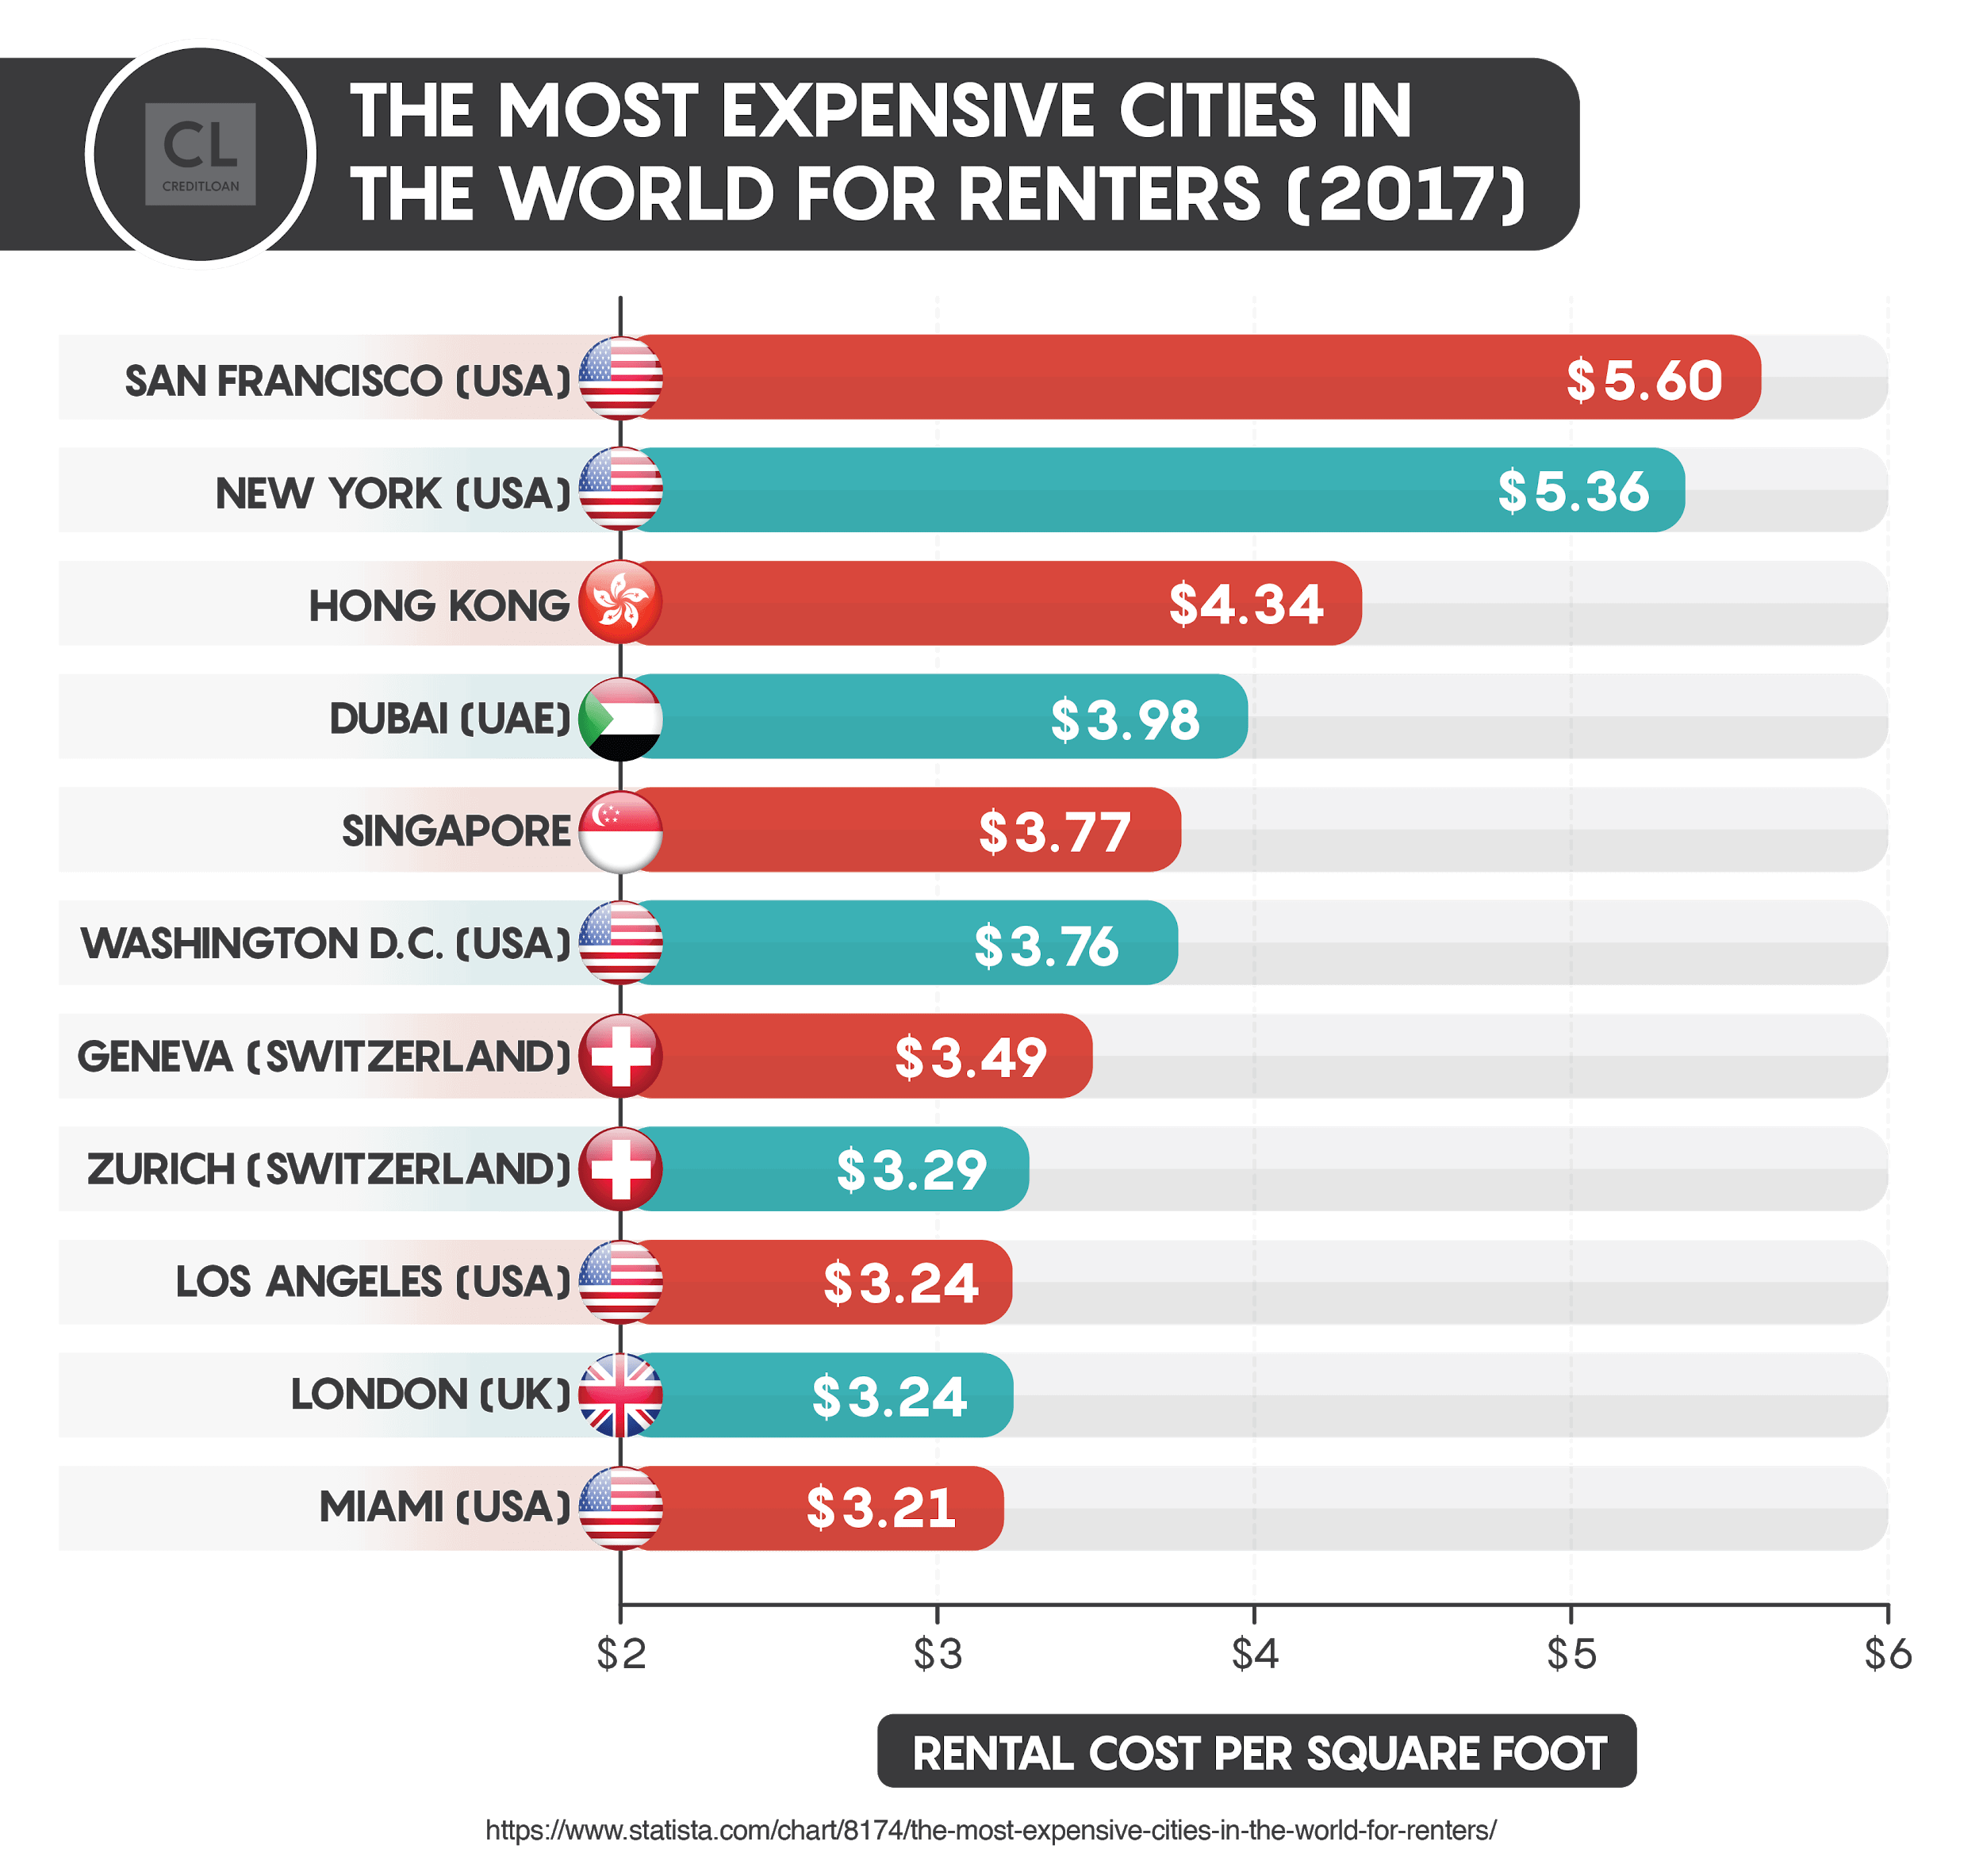 The Most Expensive Cities In The World For Renters